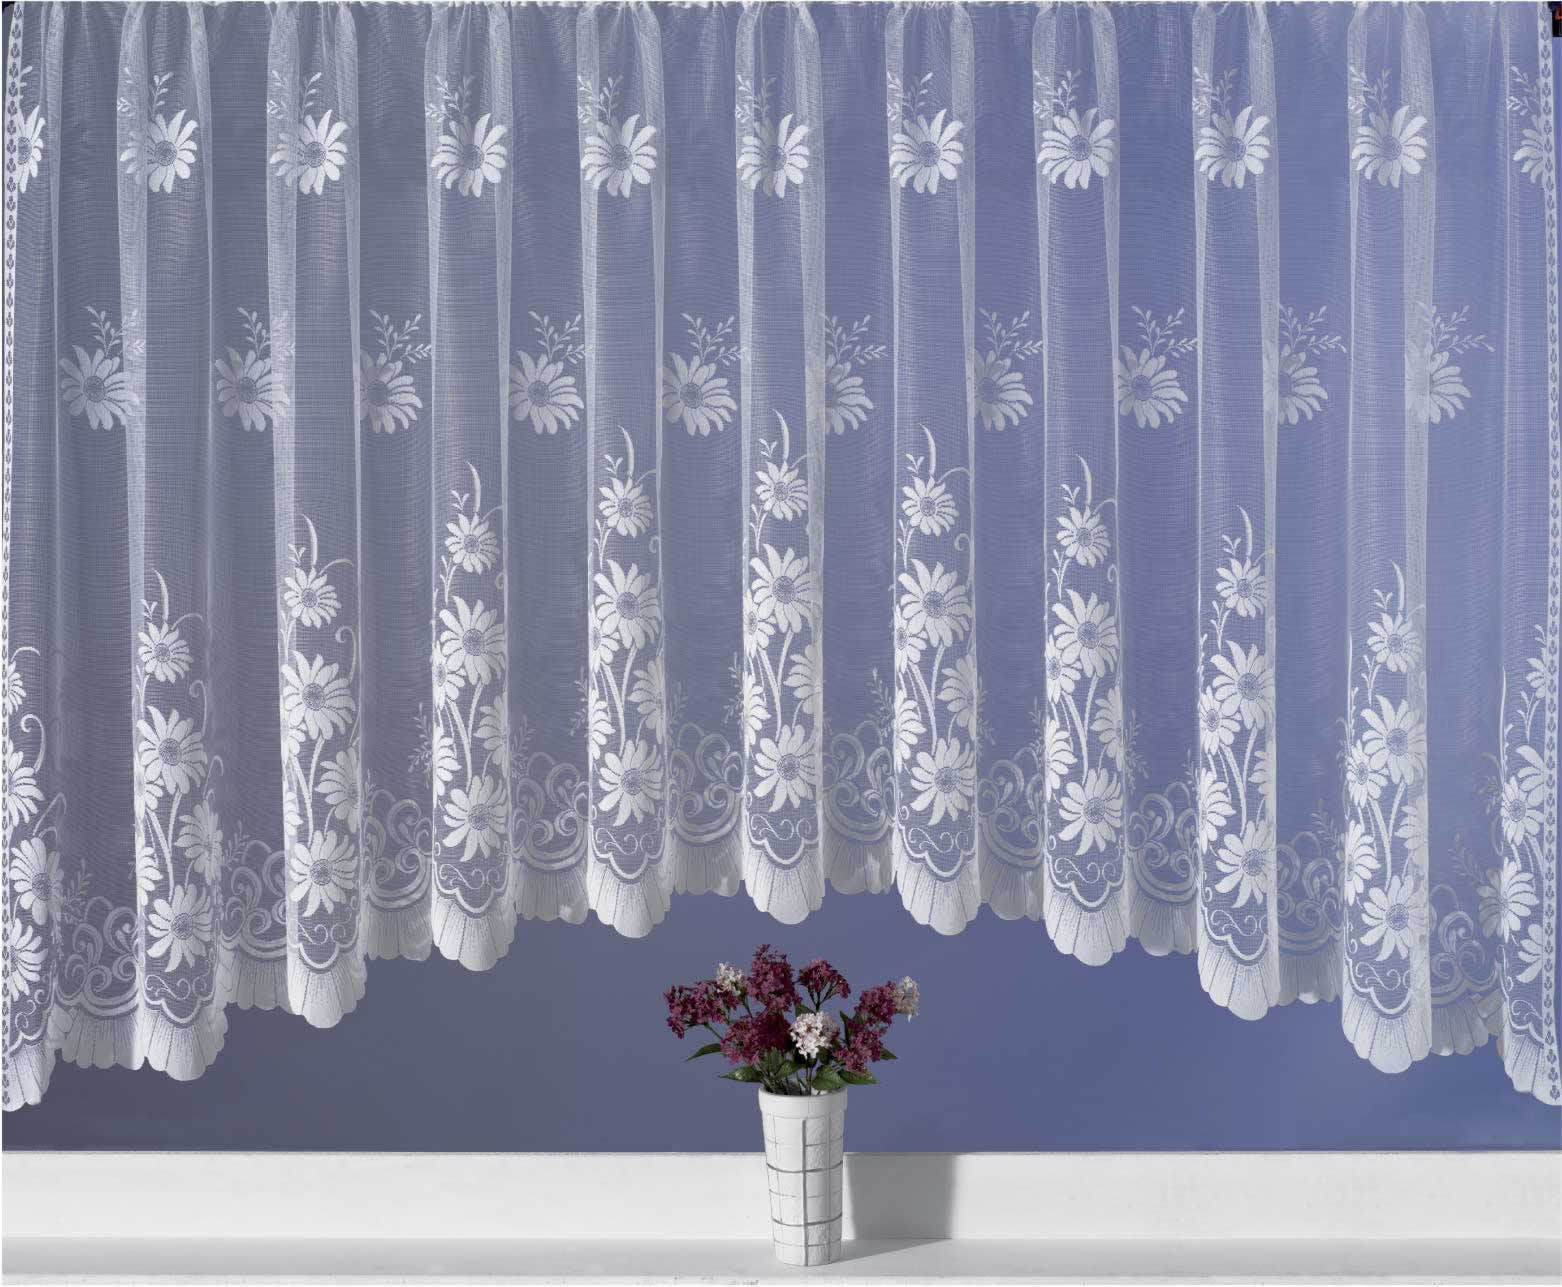 Net curtains and its usage